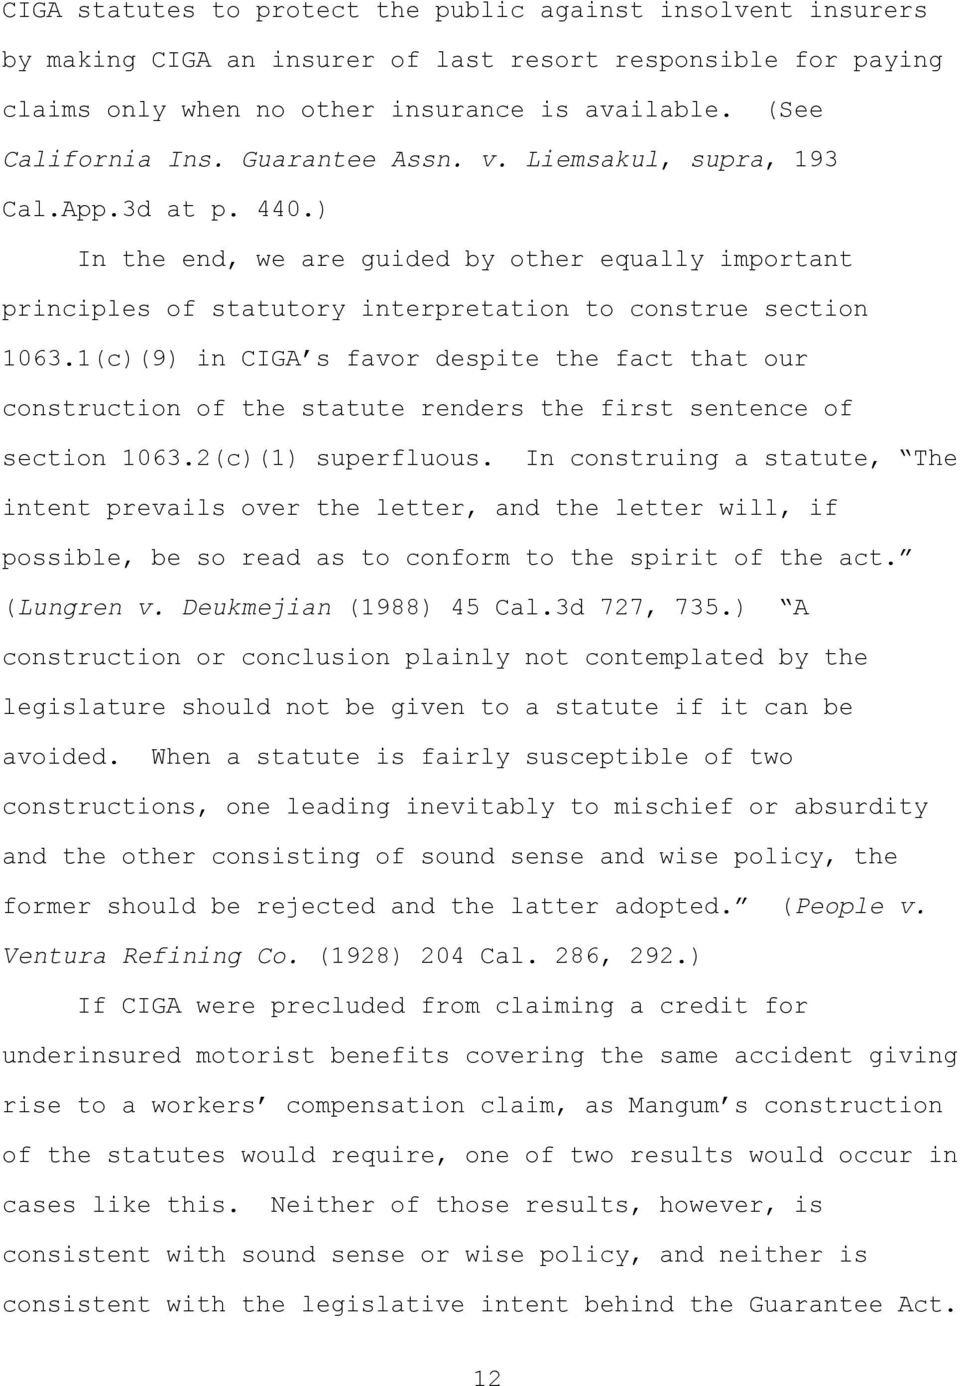 1(c)(9) in CIGA s favor despite the fact that our construction of the statute renders the first sentence of section 1063.2(c)(1) superfluous.